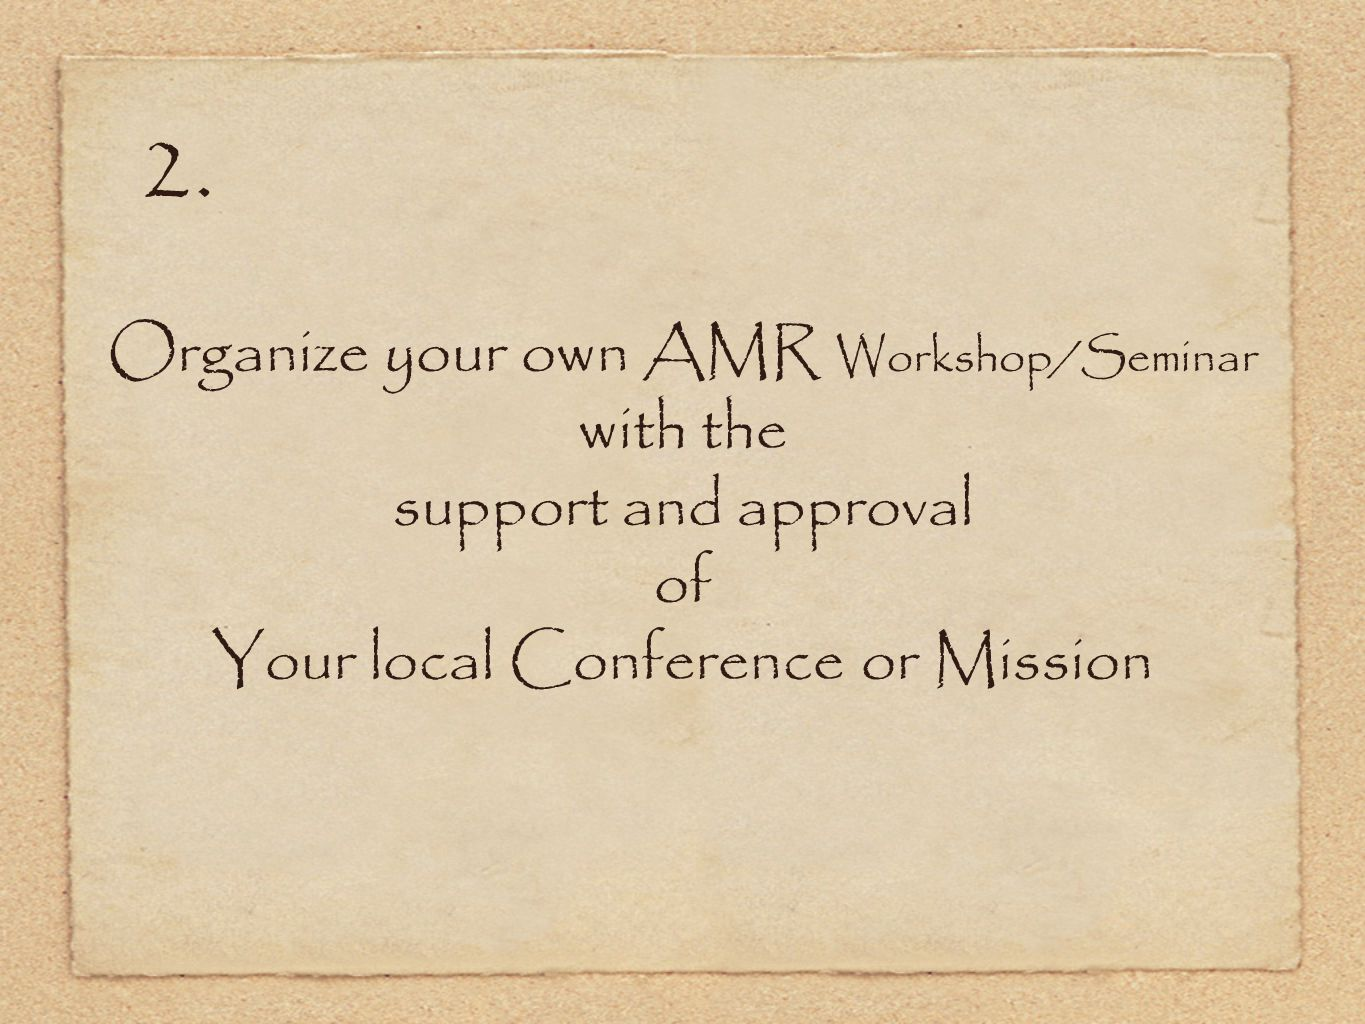 2. Organize your own AMR Workshop/Seminar with the support and approval of Your local Conference or Mission